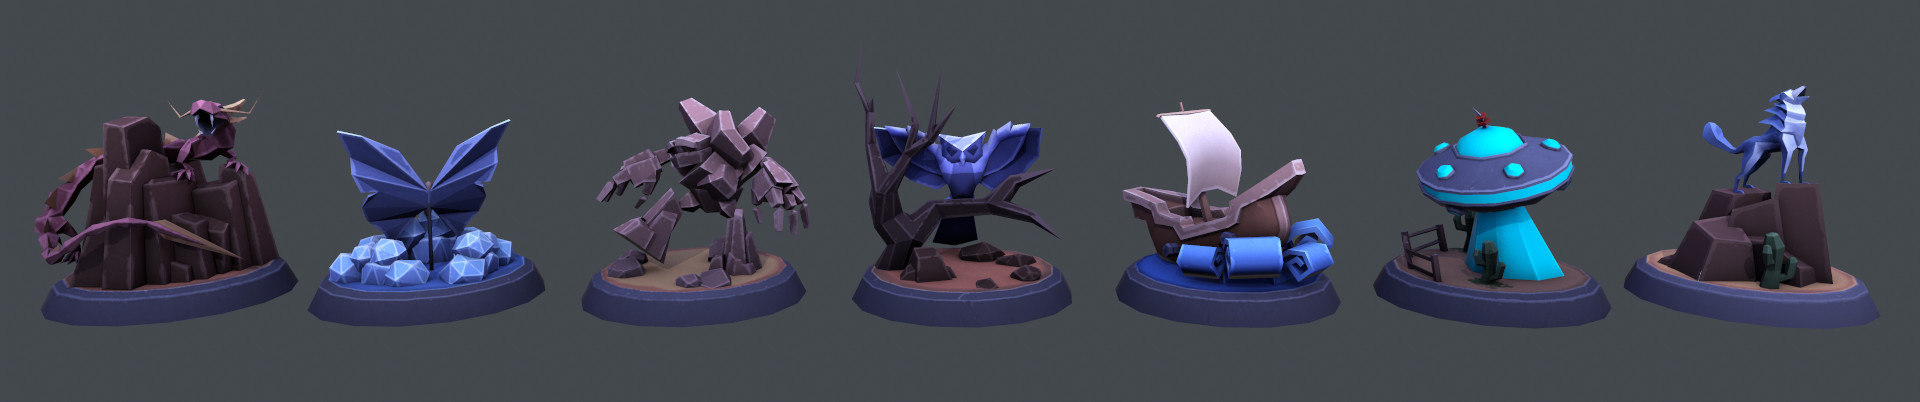 Trophies. (Creature Base models by Luke Owen except Wolf and UFO)